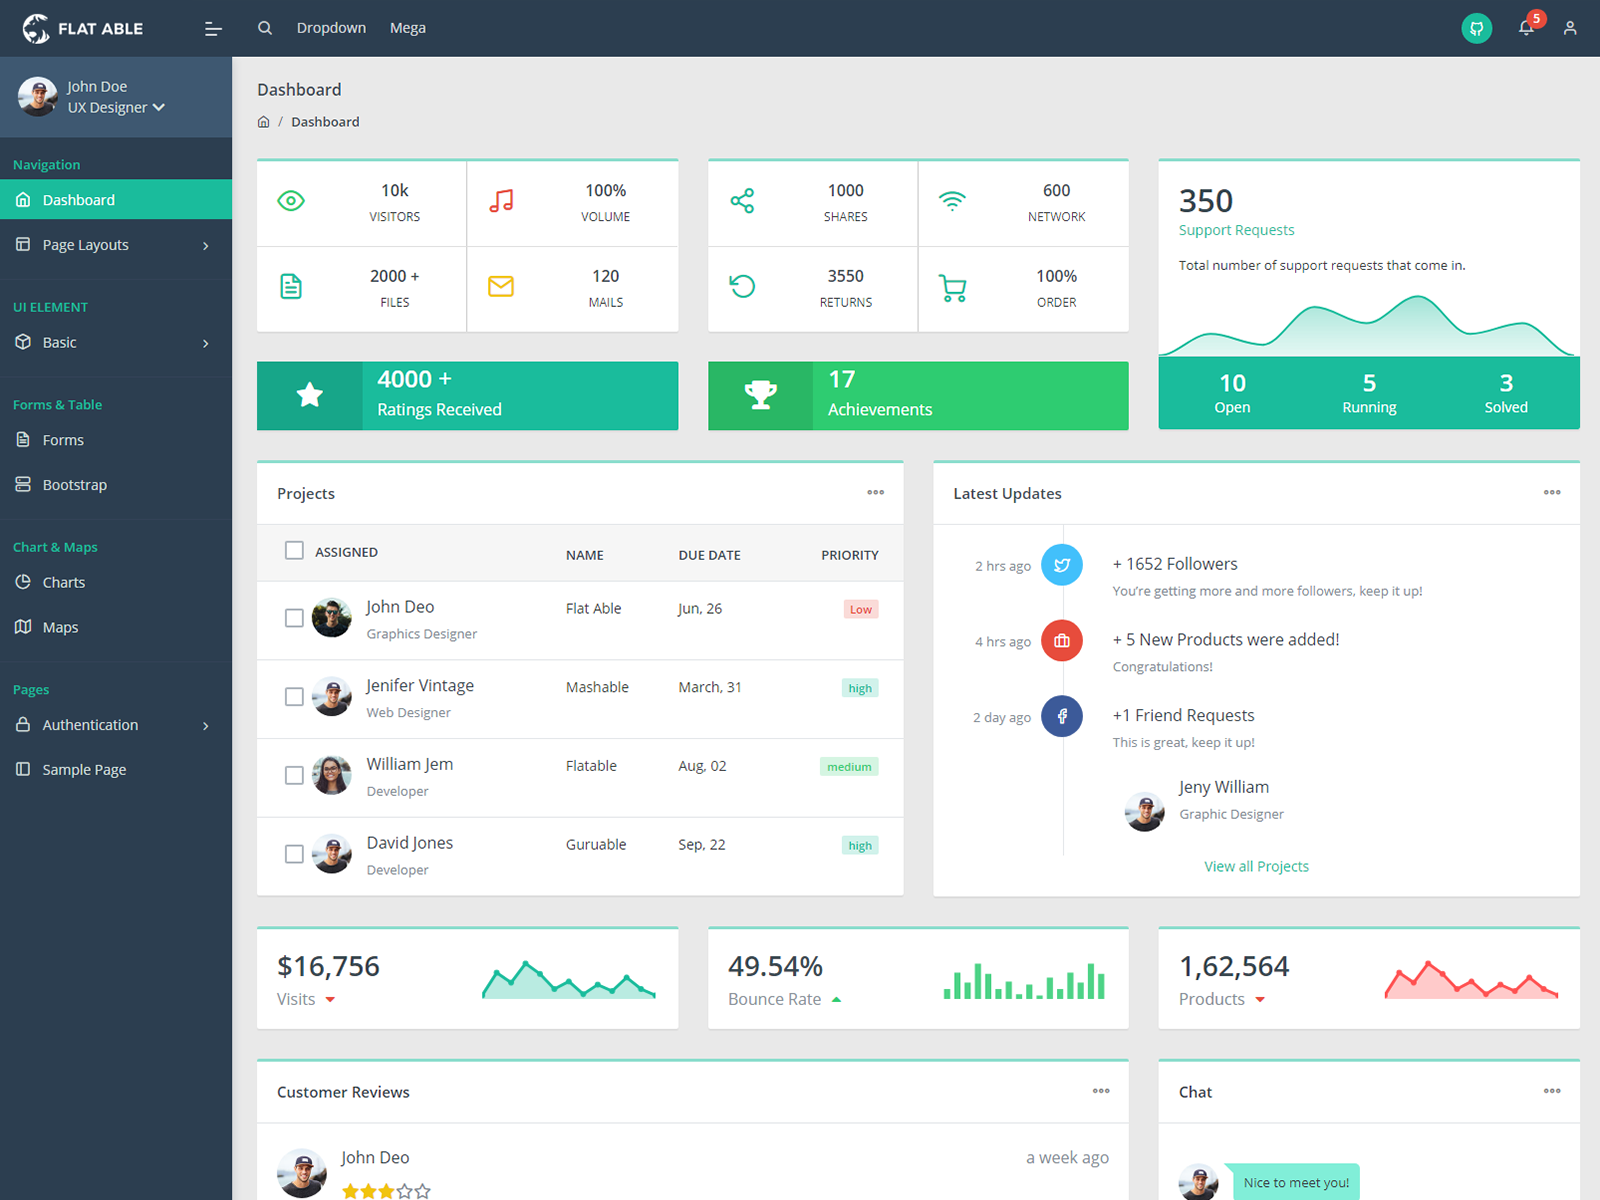 Flat Able Bootstrap 4 Admin Template cover image